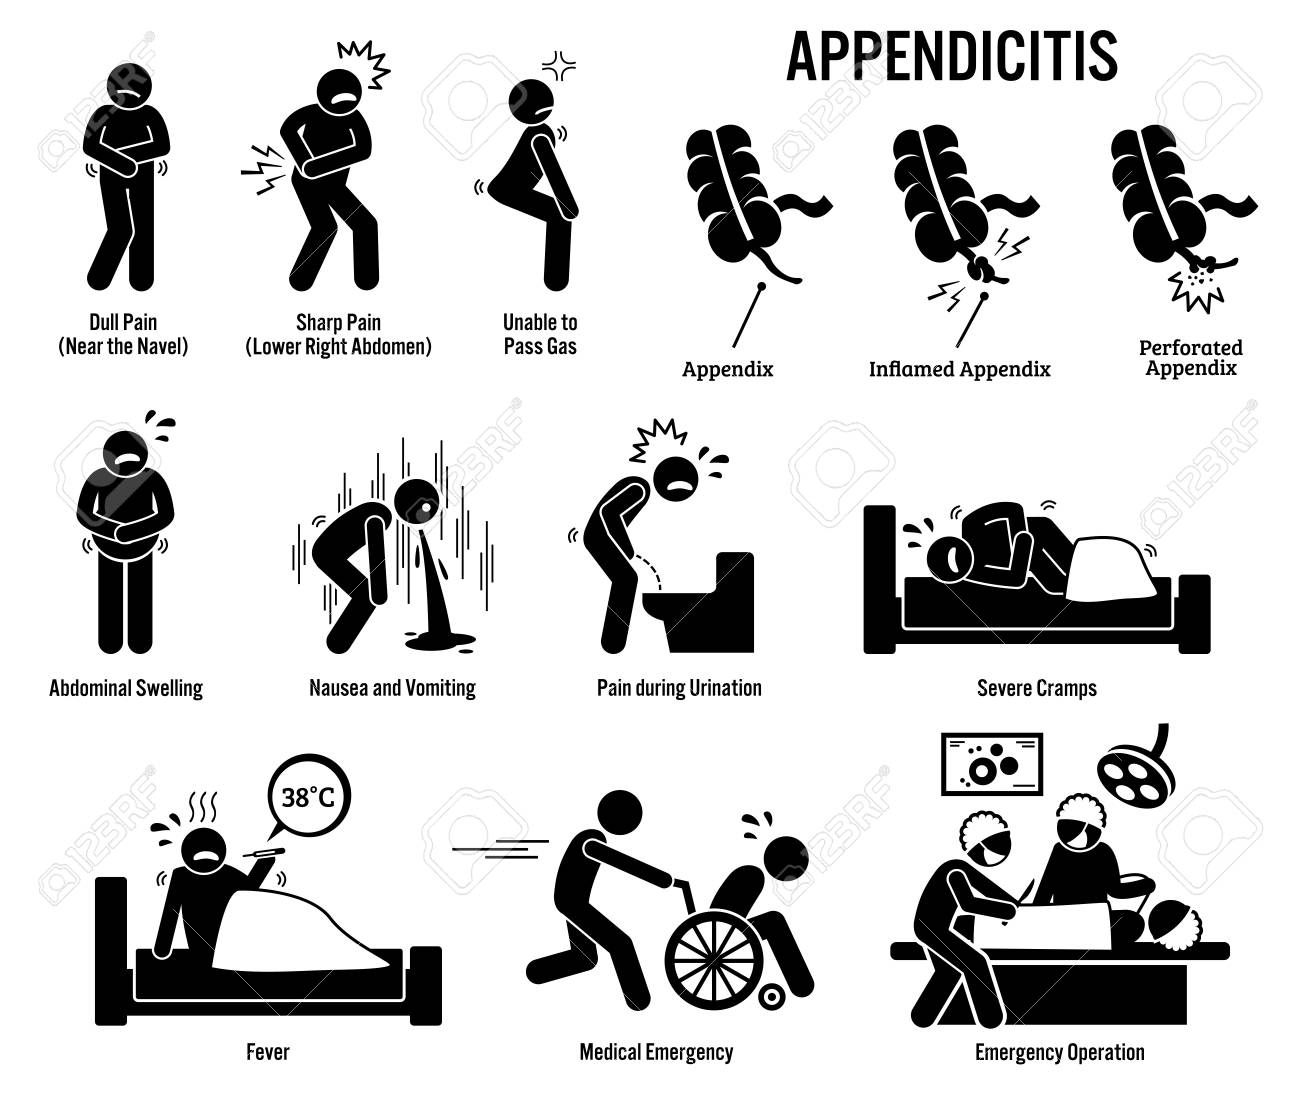 appendix and appendicitis icons  pictogram and diagrams depict signs,  symptoms, and emergency surgery